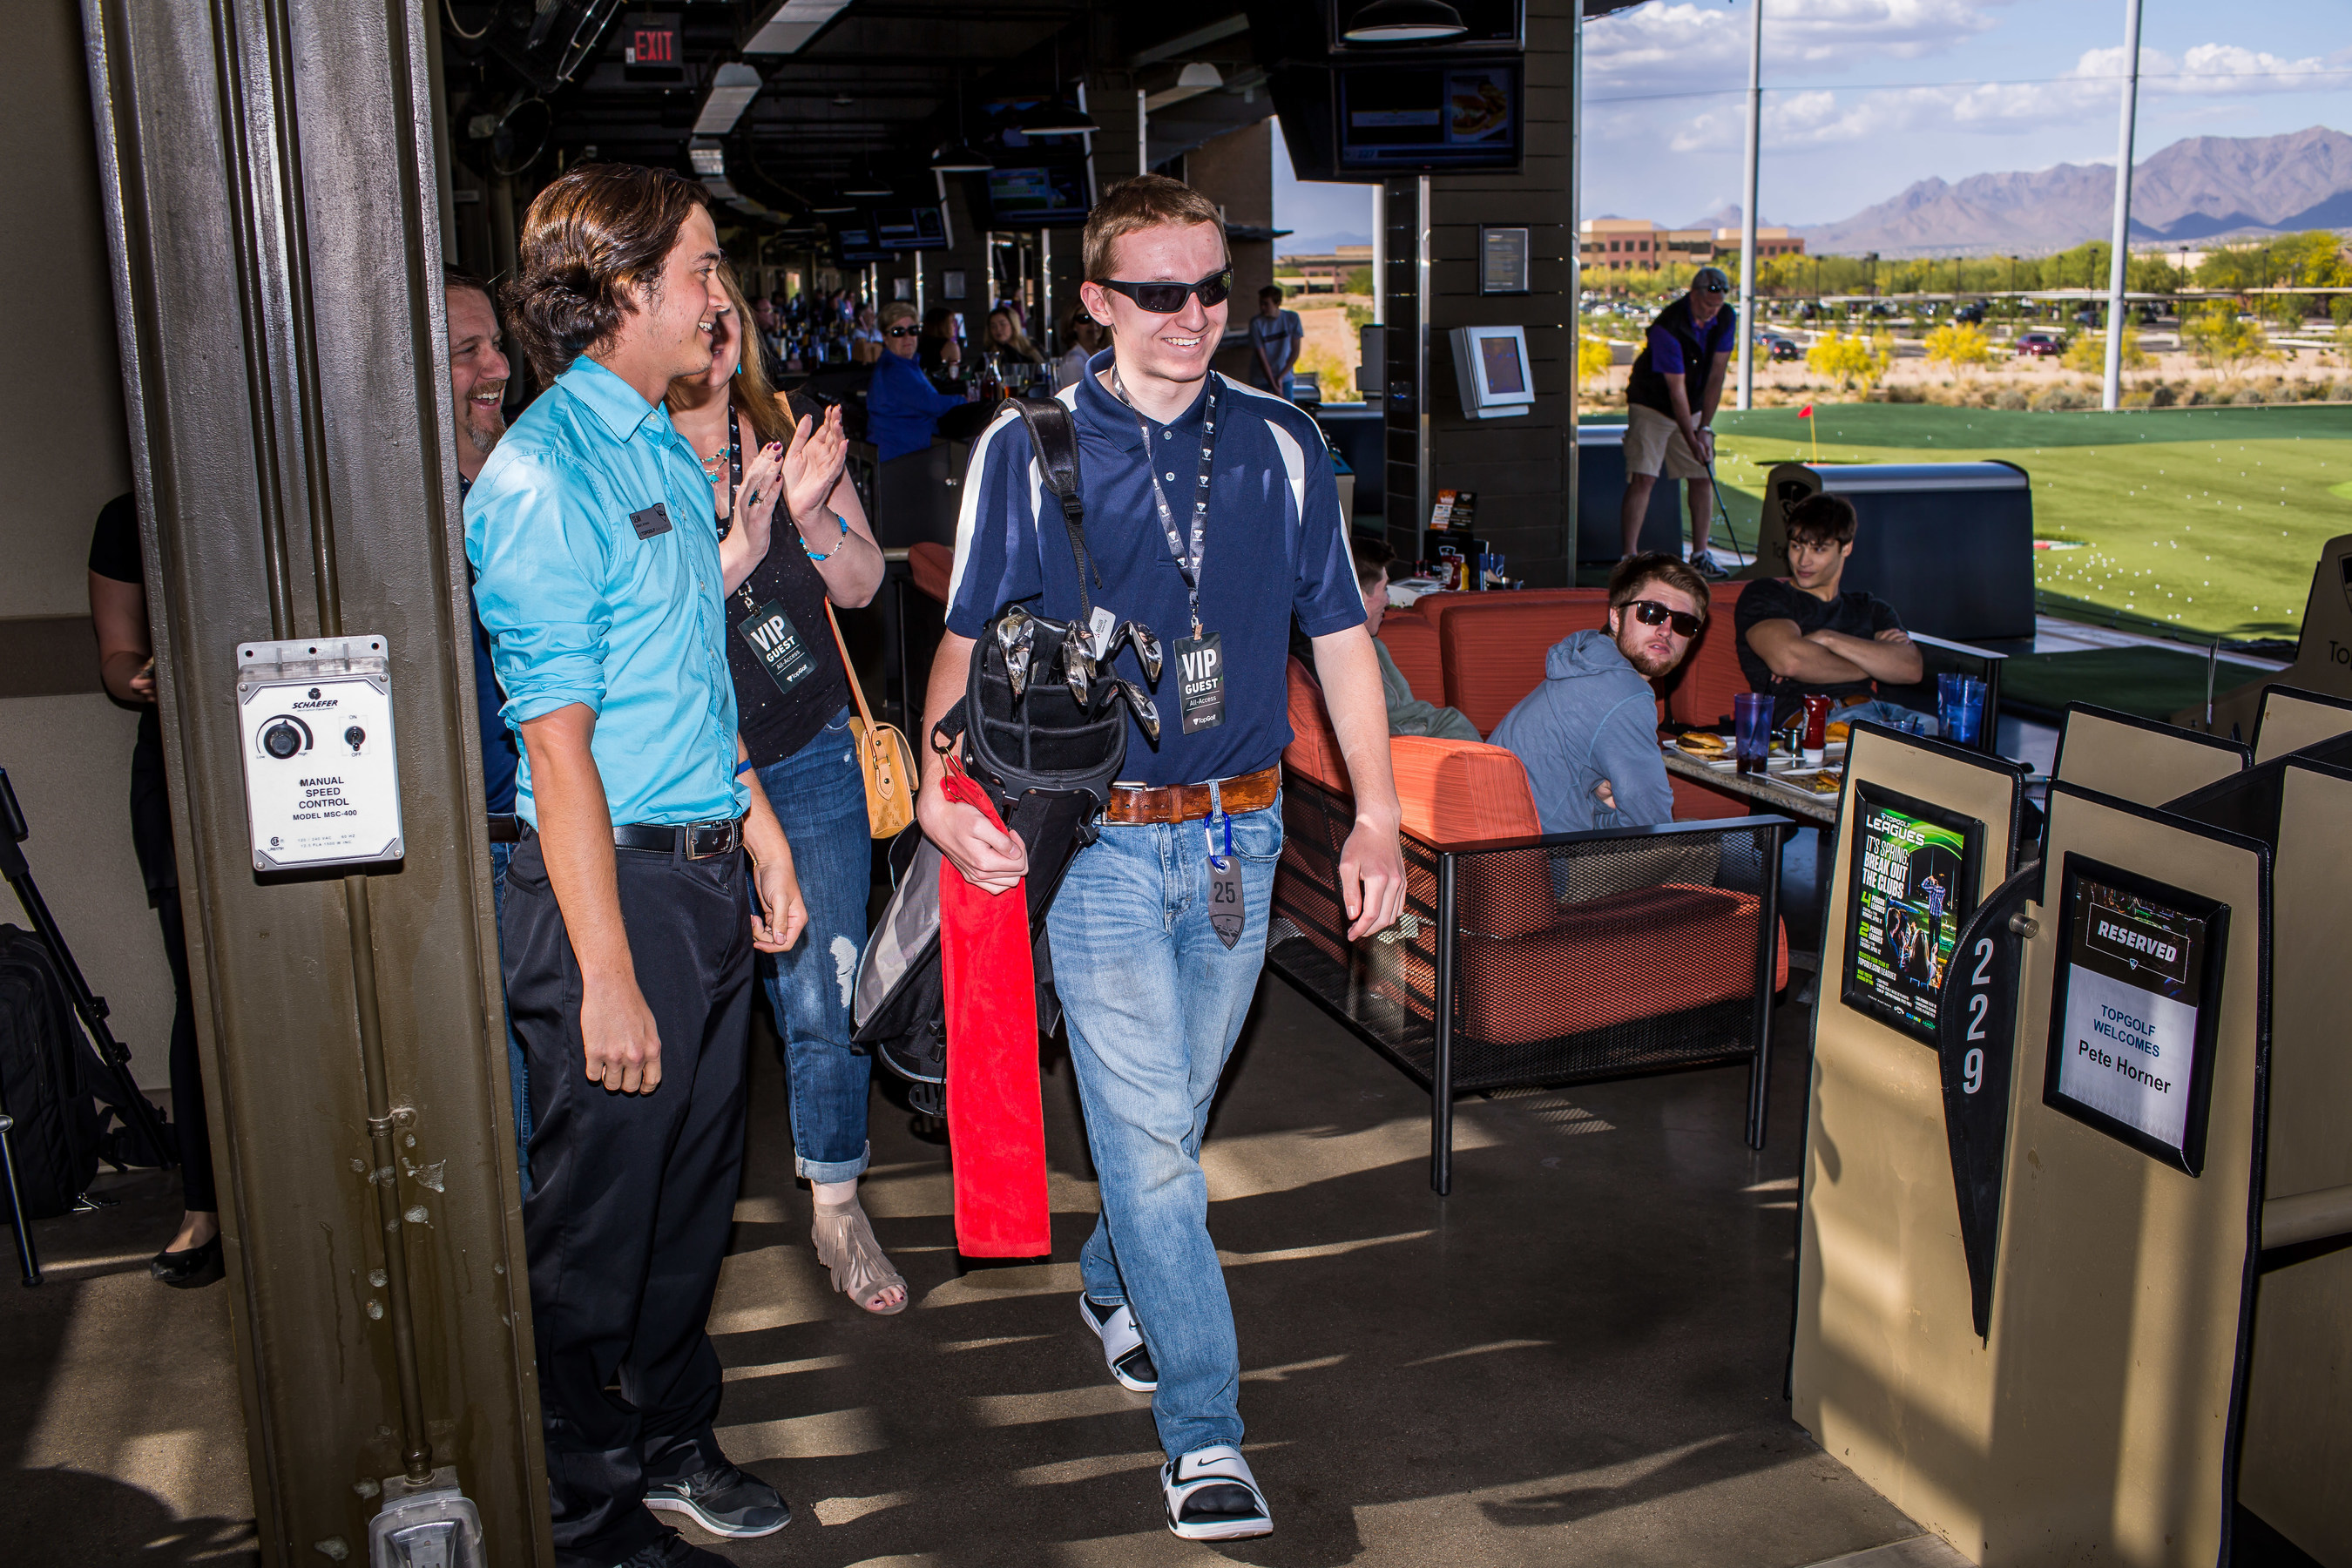 Topgolf helps celebrate a wish for Pete with Make-A-Wish